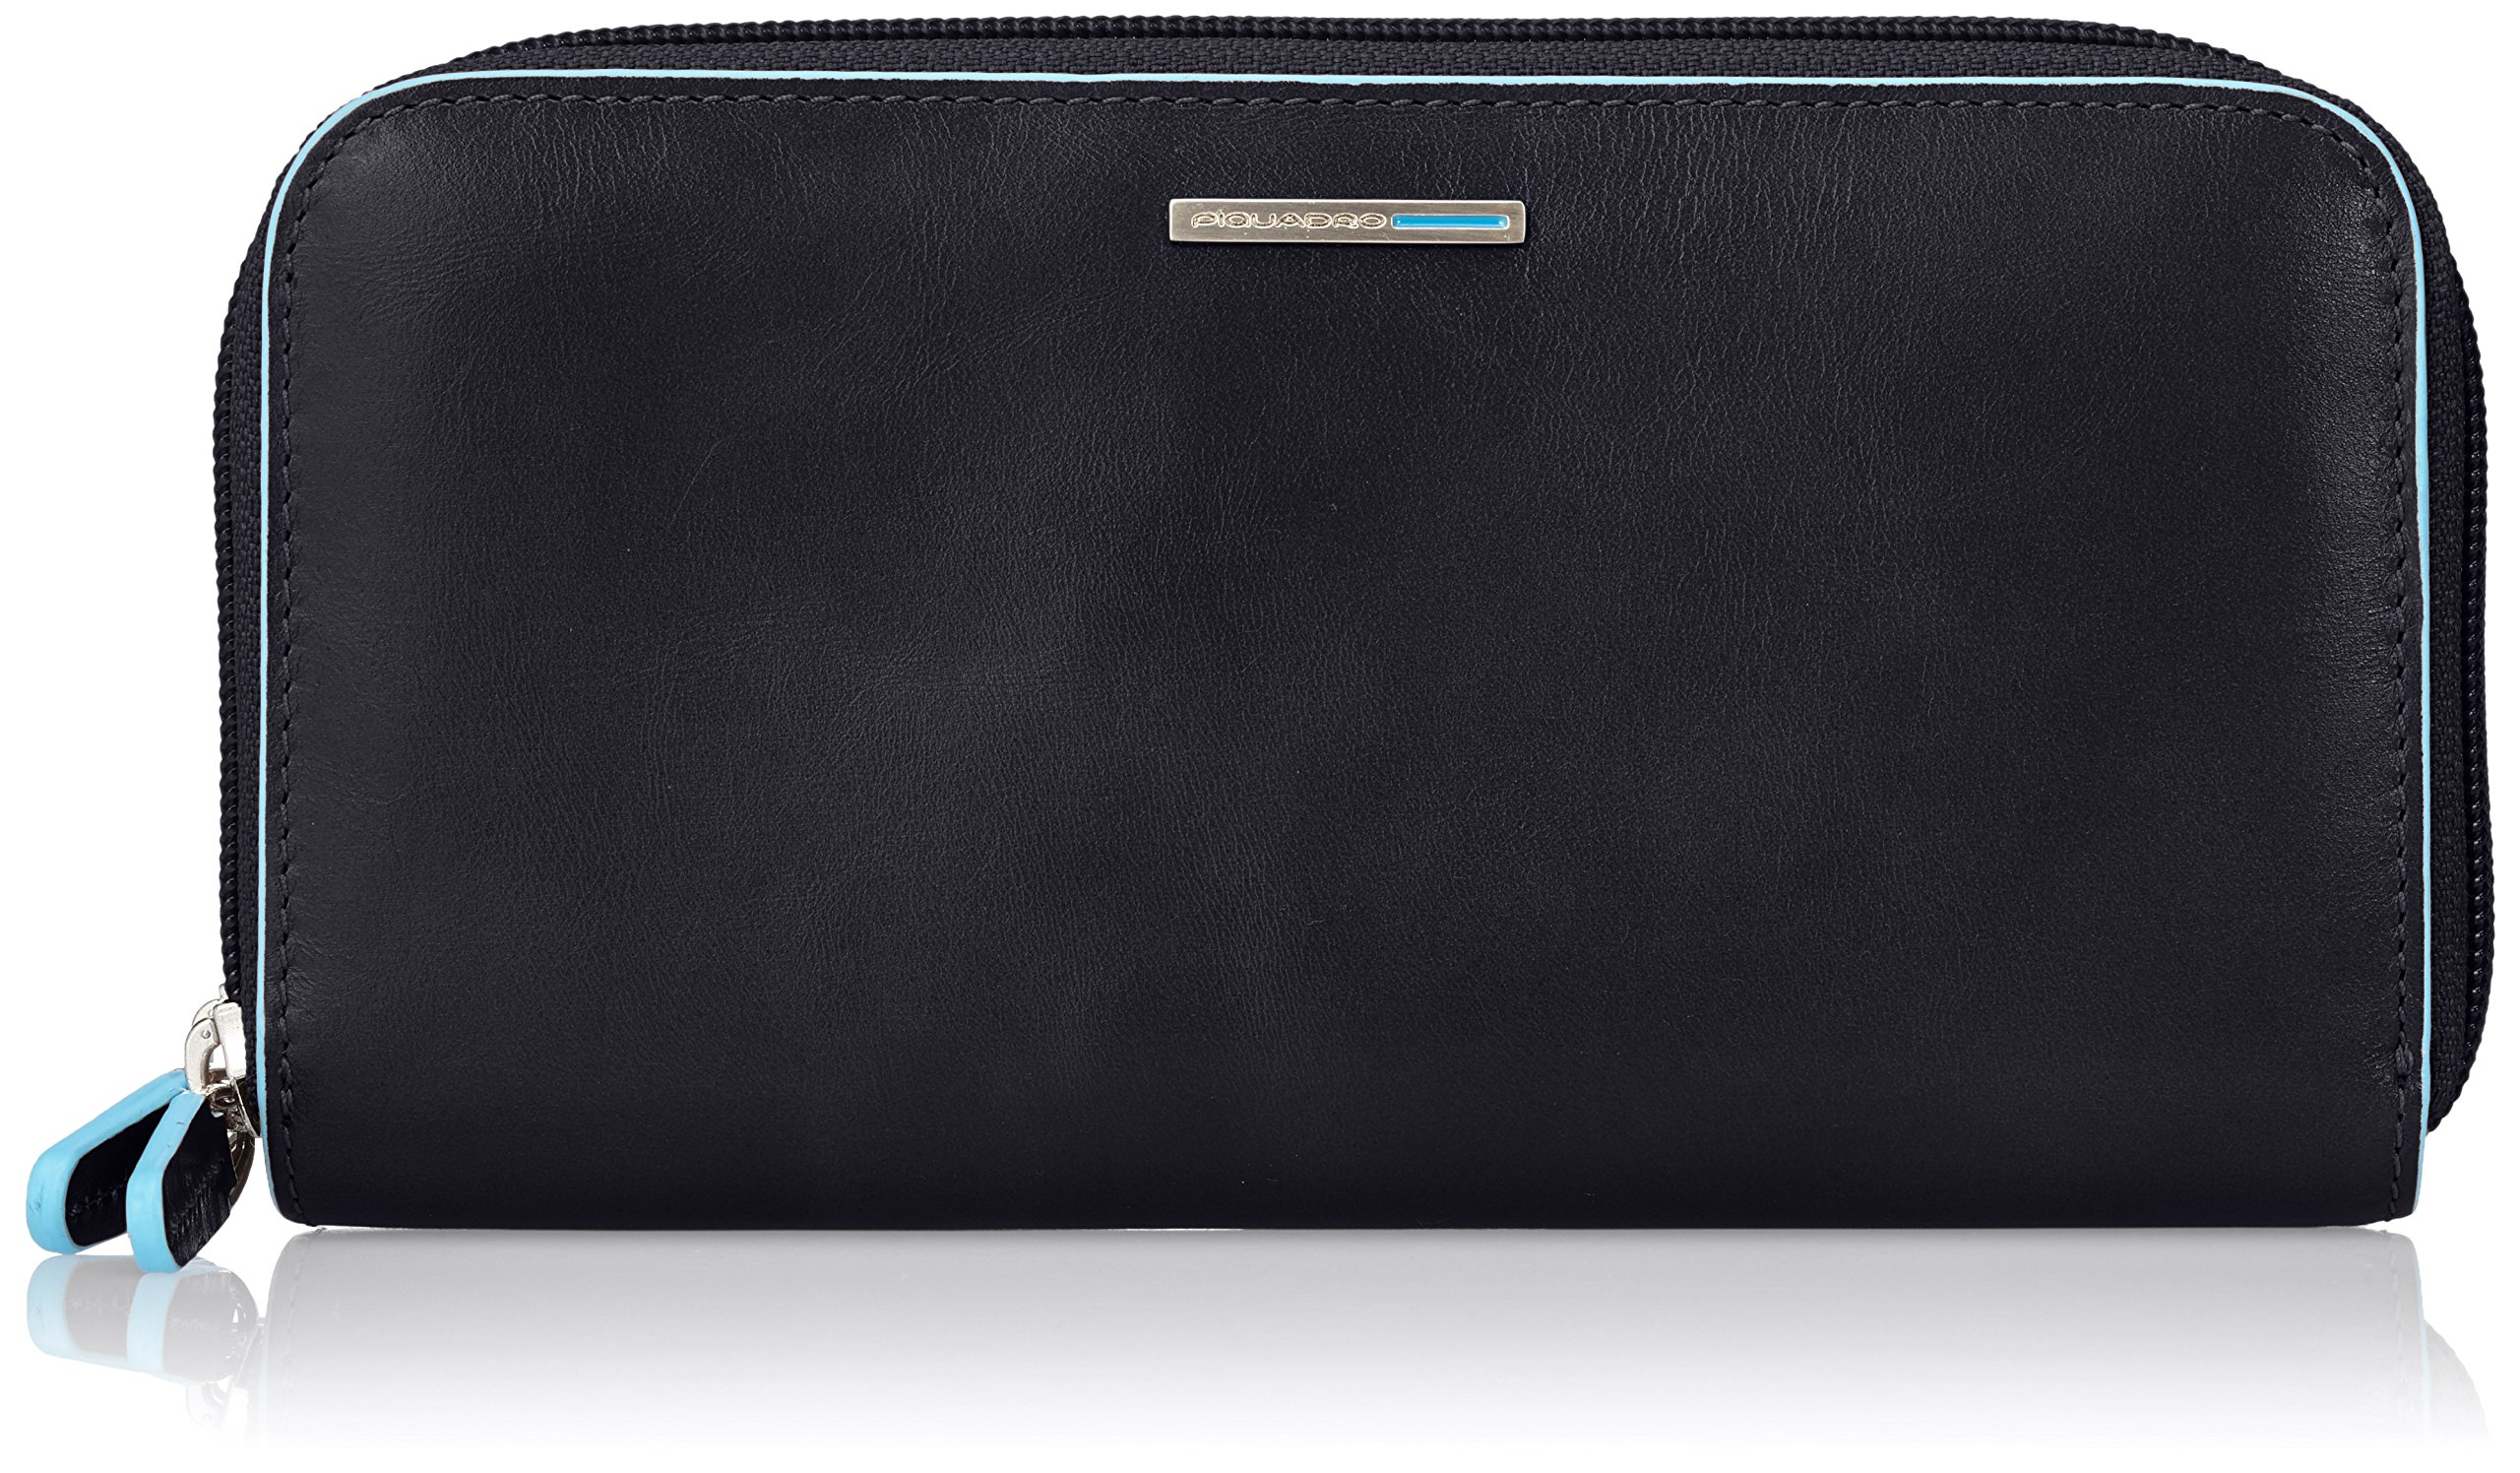 Piquadro Women's Wallet with iPhone 6 47 Inch Compartment, Black, One Size by Piquadro